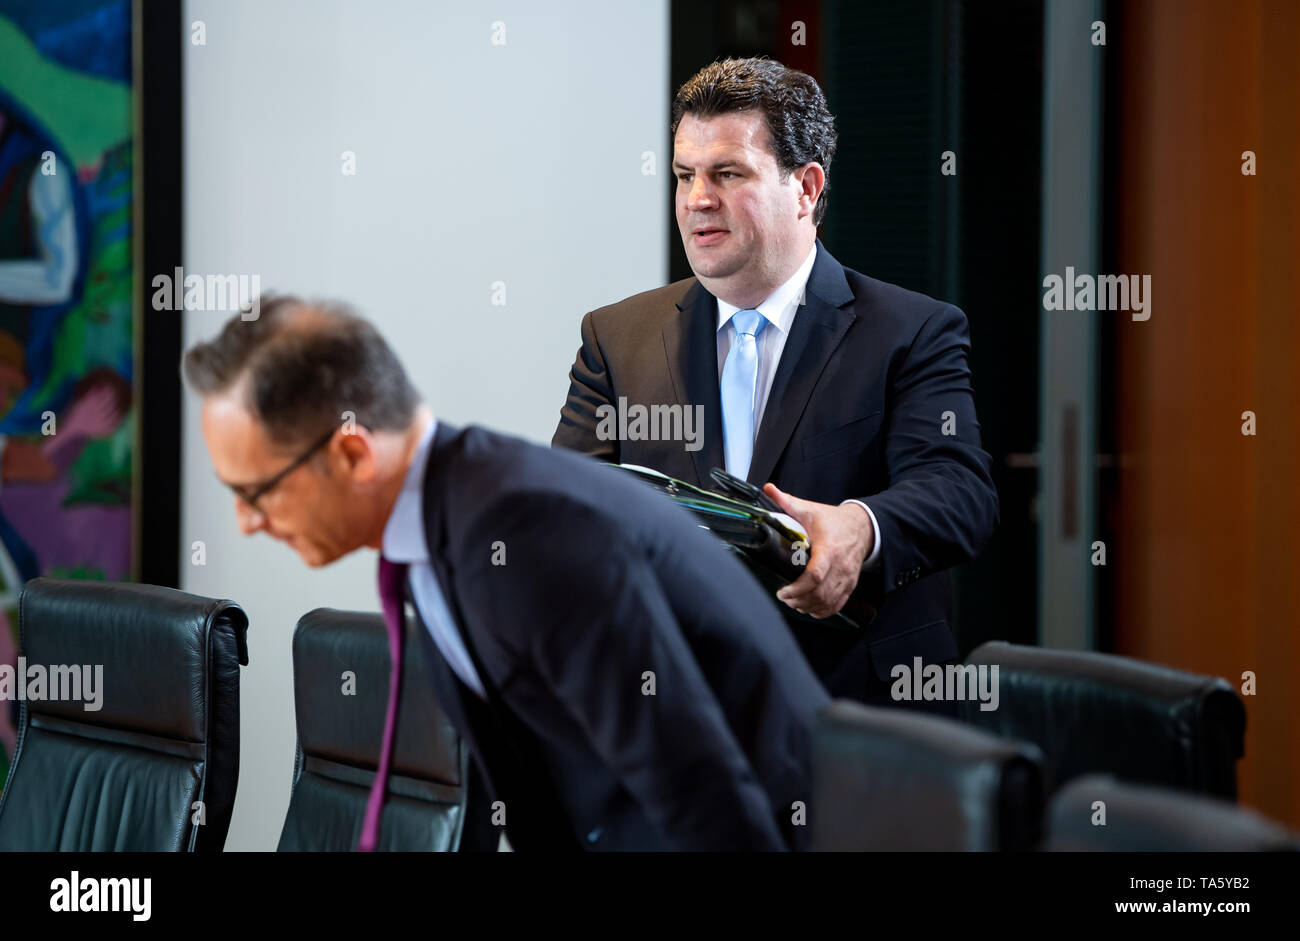 Berlin, Germany. 22nd May, 2019. Hubertus Heil (SPD, r), Federal Minister of Labour and Social Affairs, is coming to the cabinet meeting in the Federal Chancellery, Heiko Maas (SPD), Foreign Minister, is sitting down. At today's meeting, the members of the Federal Government will discuss, among other things, the billions in aid for structural change in the coal-mining regions and a draft law on tax incentives for research and development. Credit: Bernd von Jutrczenka/dpa/Alamy Live News - Stock Image